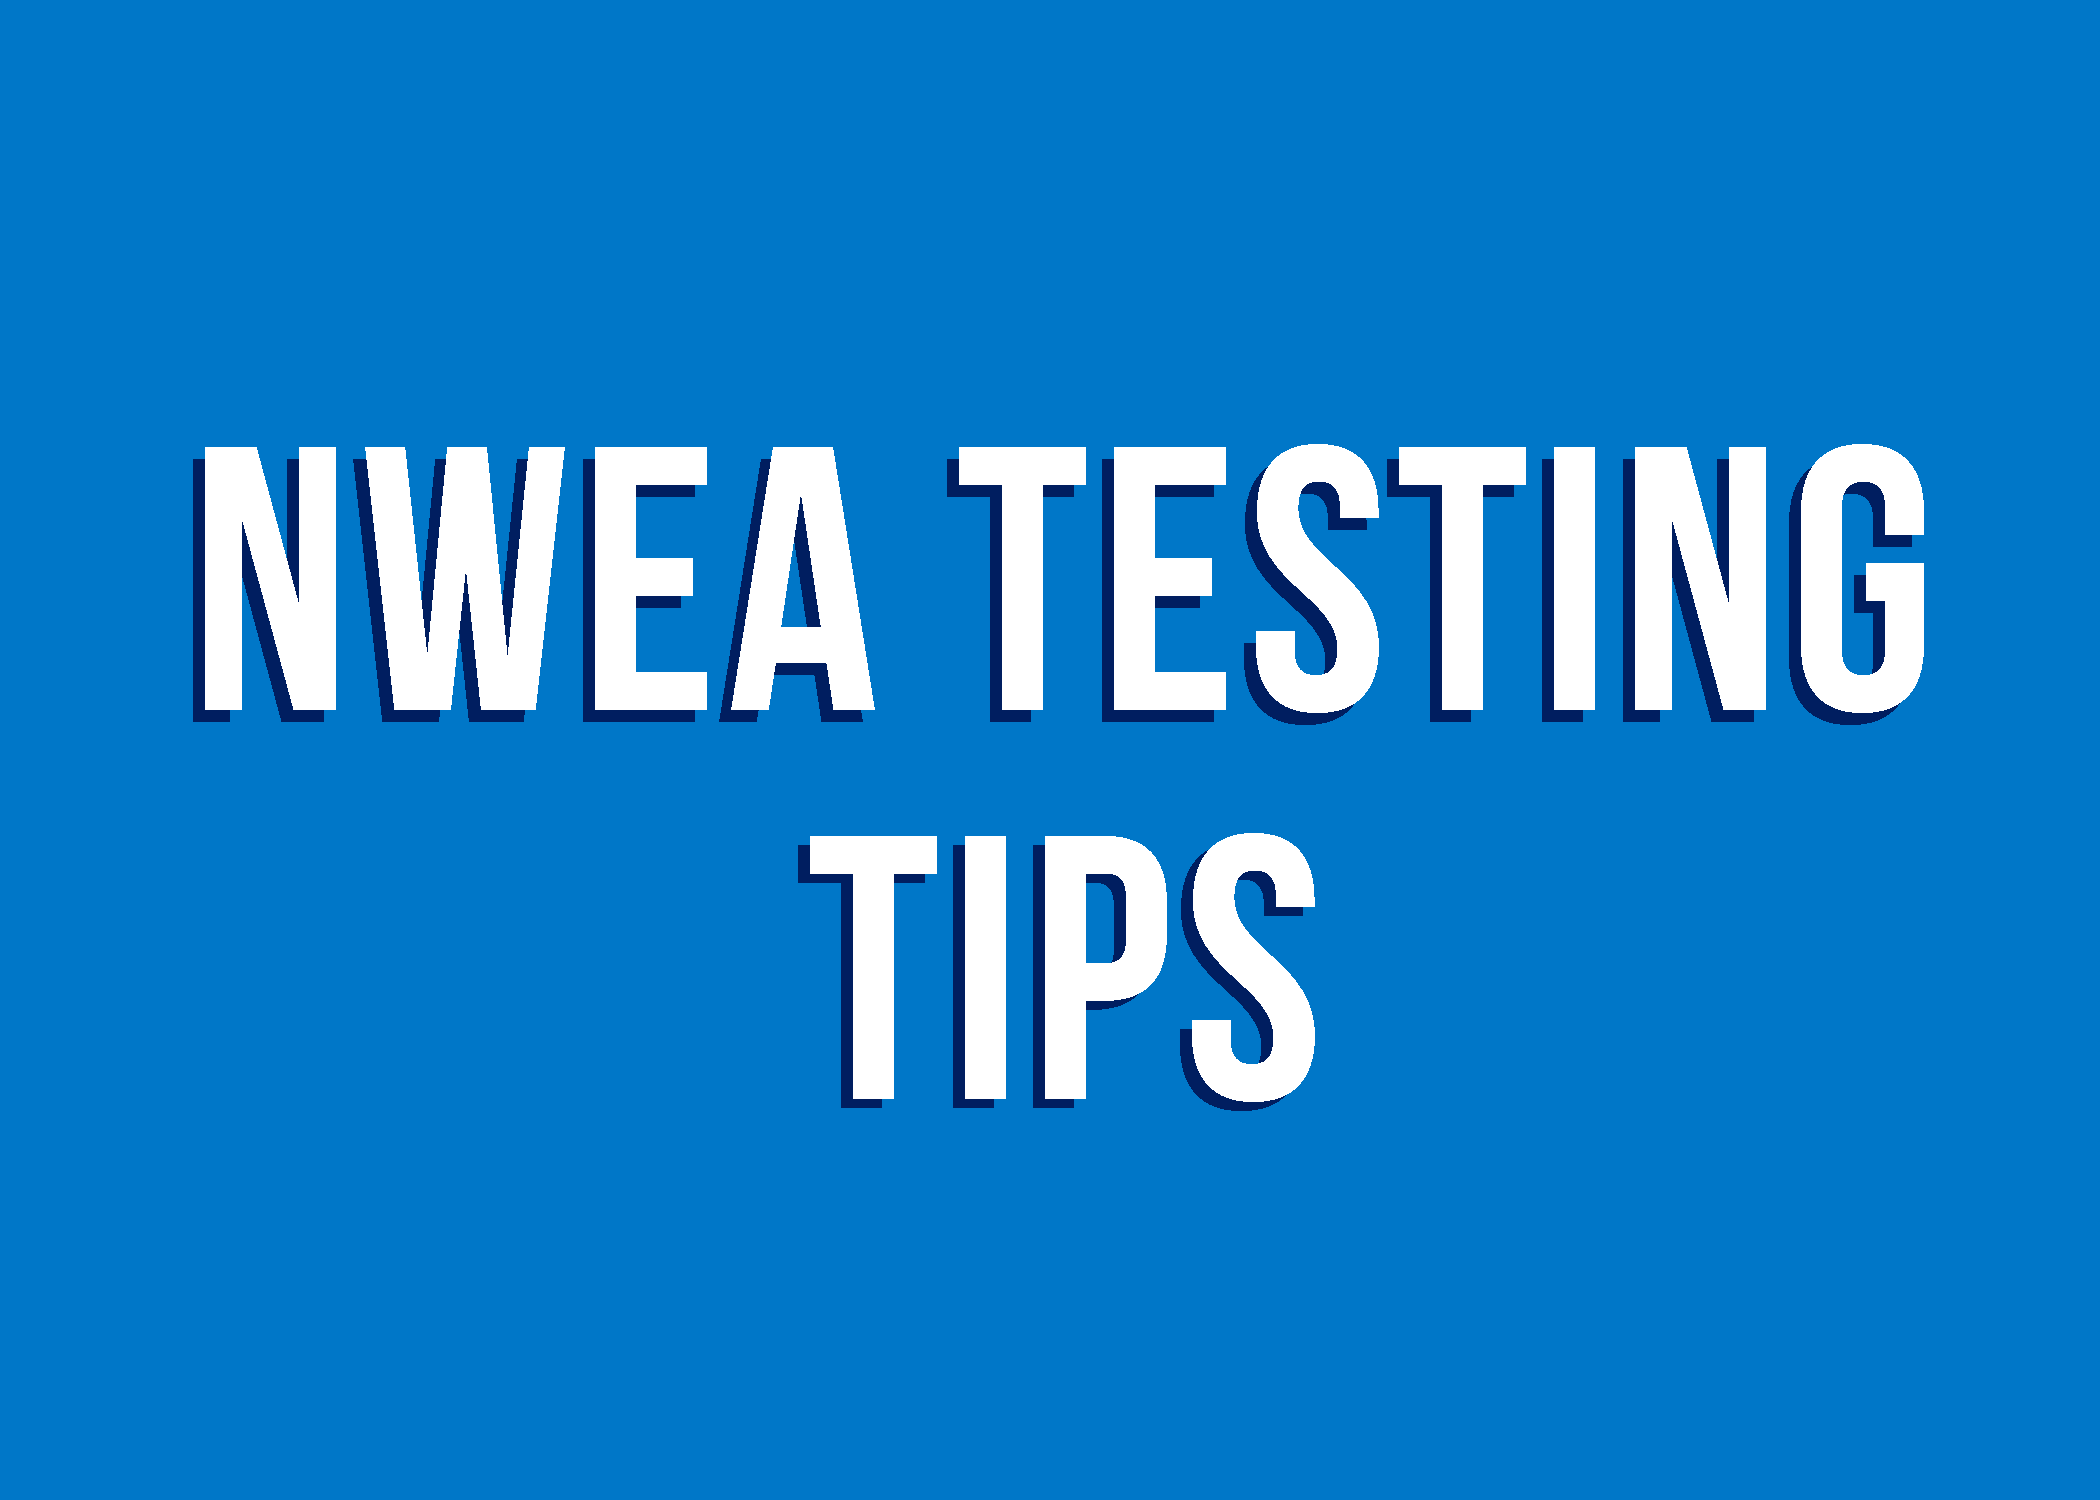 NWEA Test Taking Tips